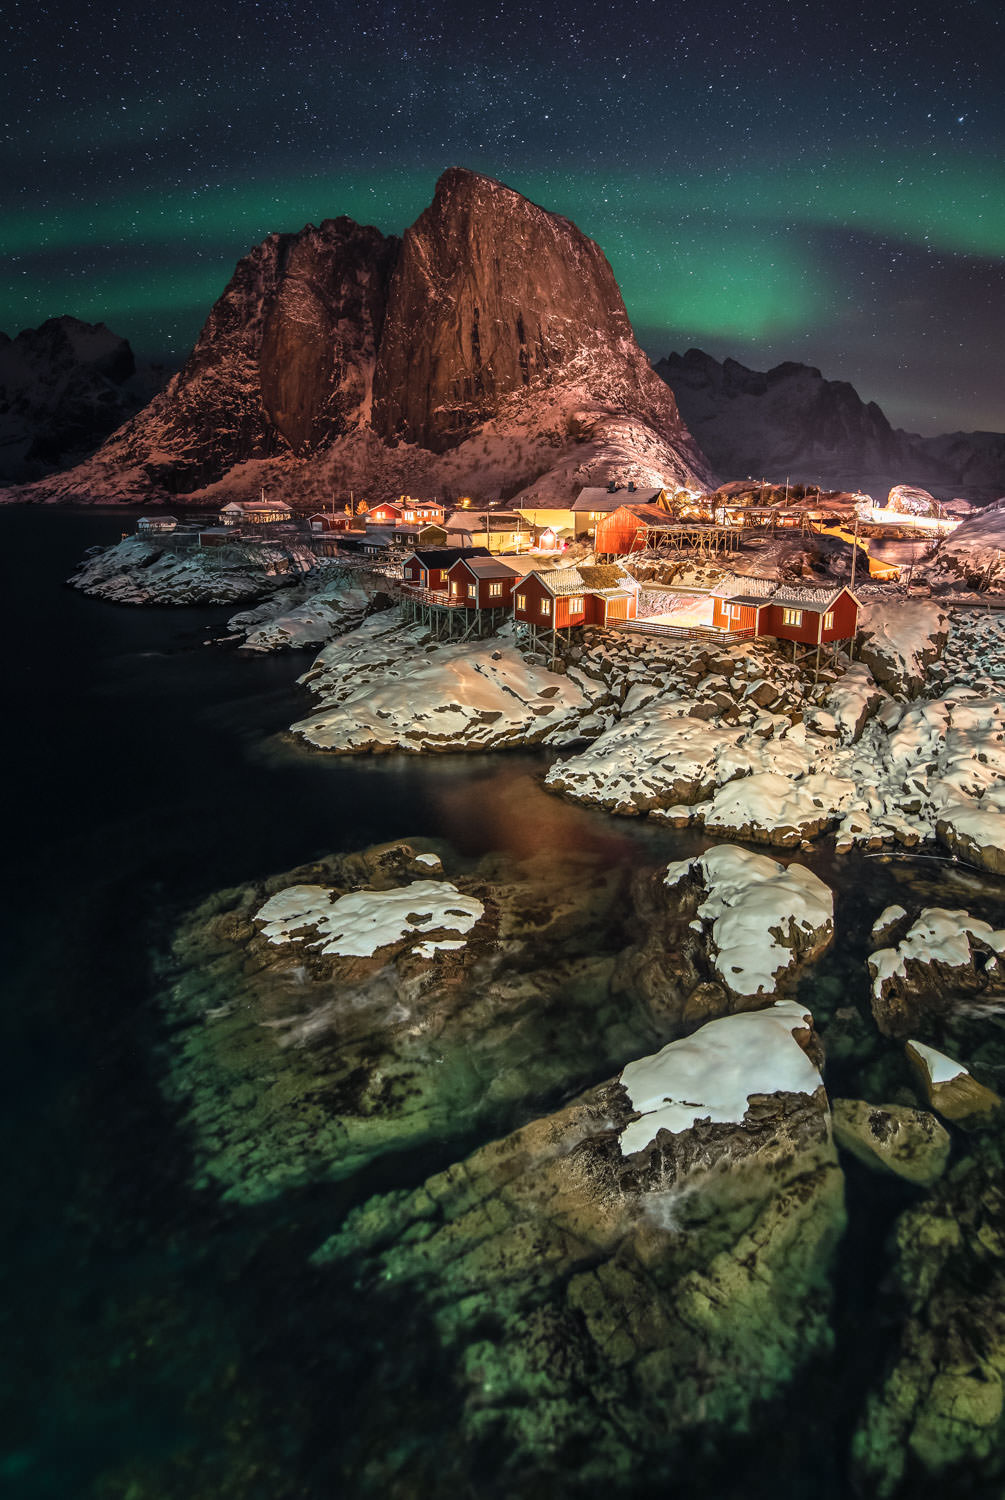 Northern Lights over the fishing village Hamnøy in Norway